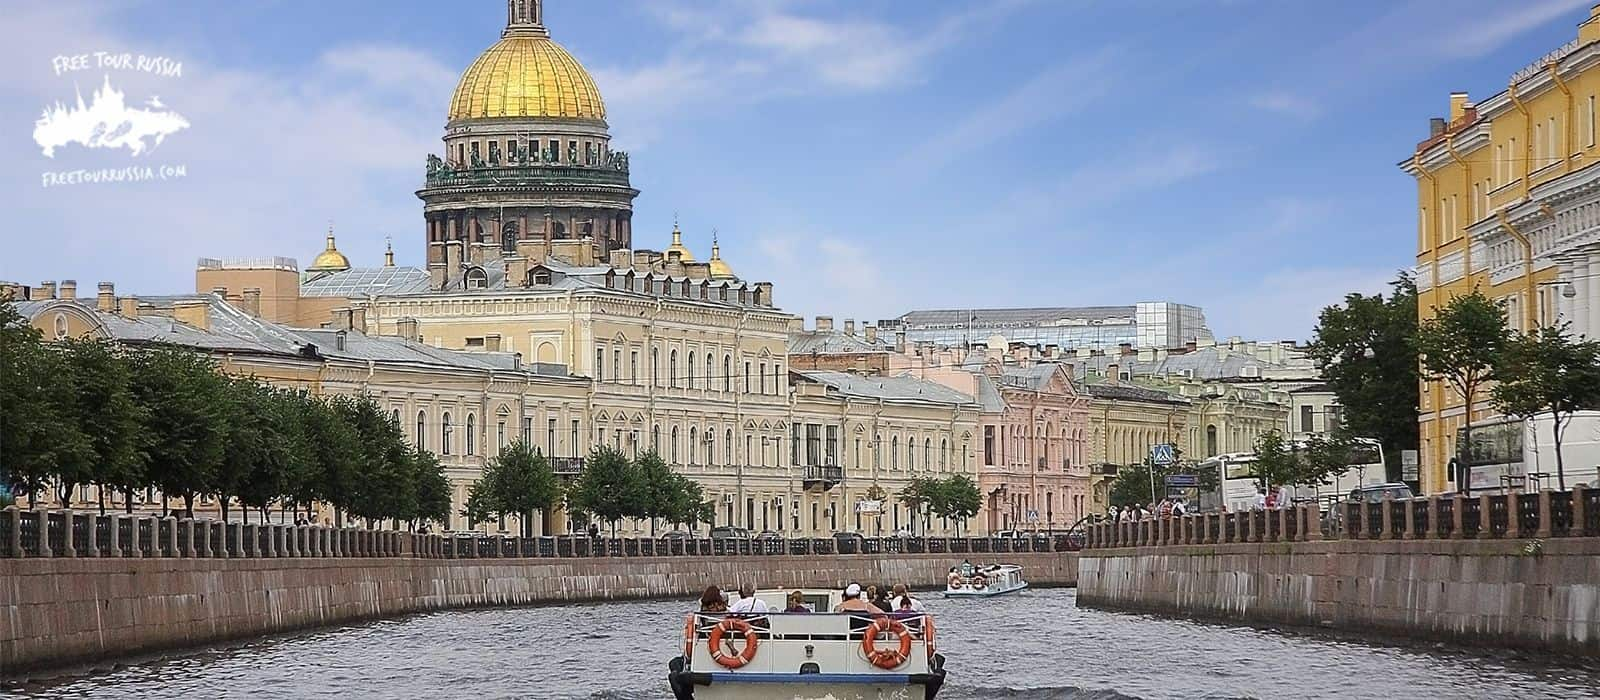 Hourly Tour in Saint Petersburg